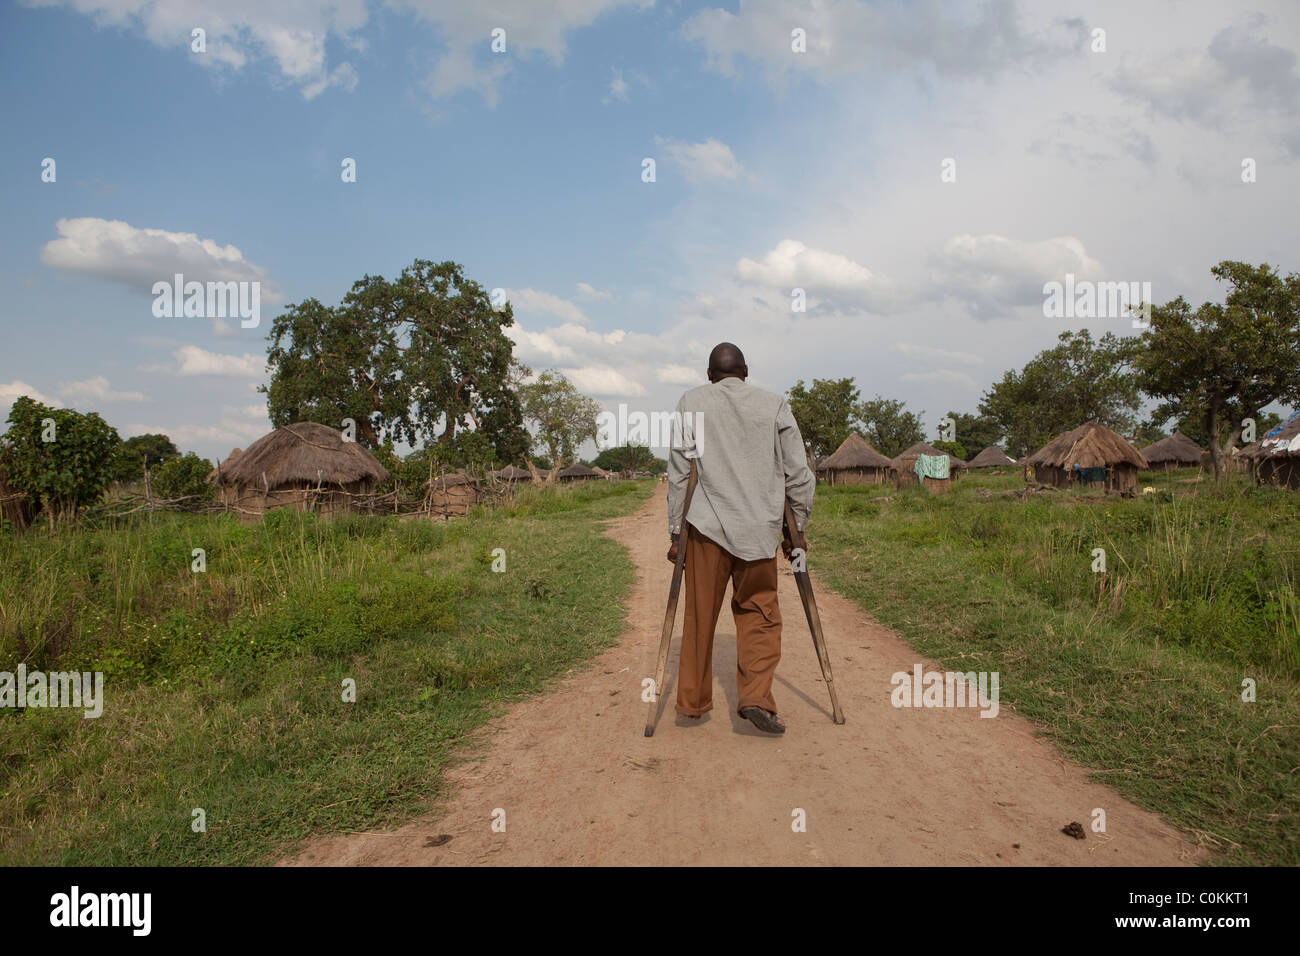 A disabled man walks through a village in Amuria, Uganda, East Africa. - Stock Image